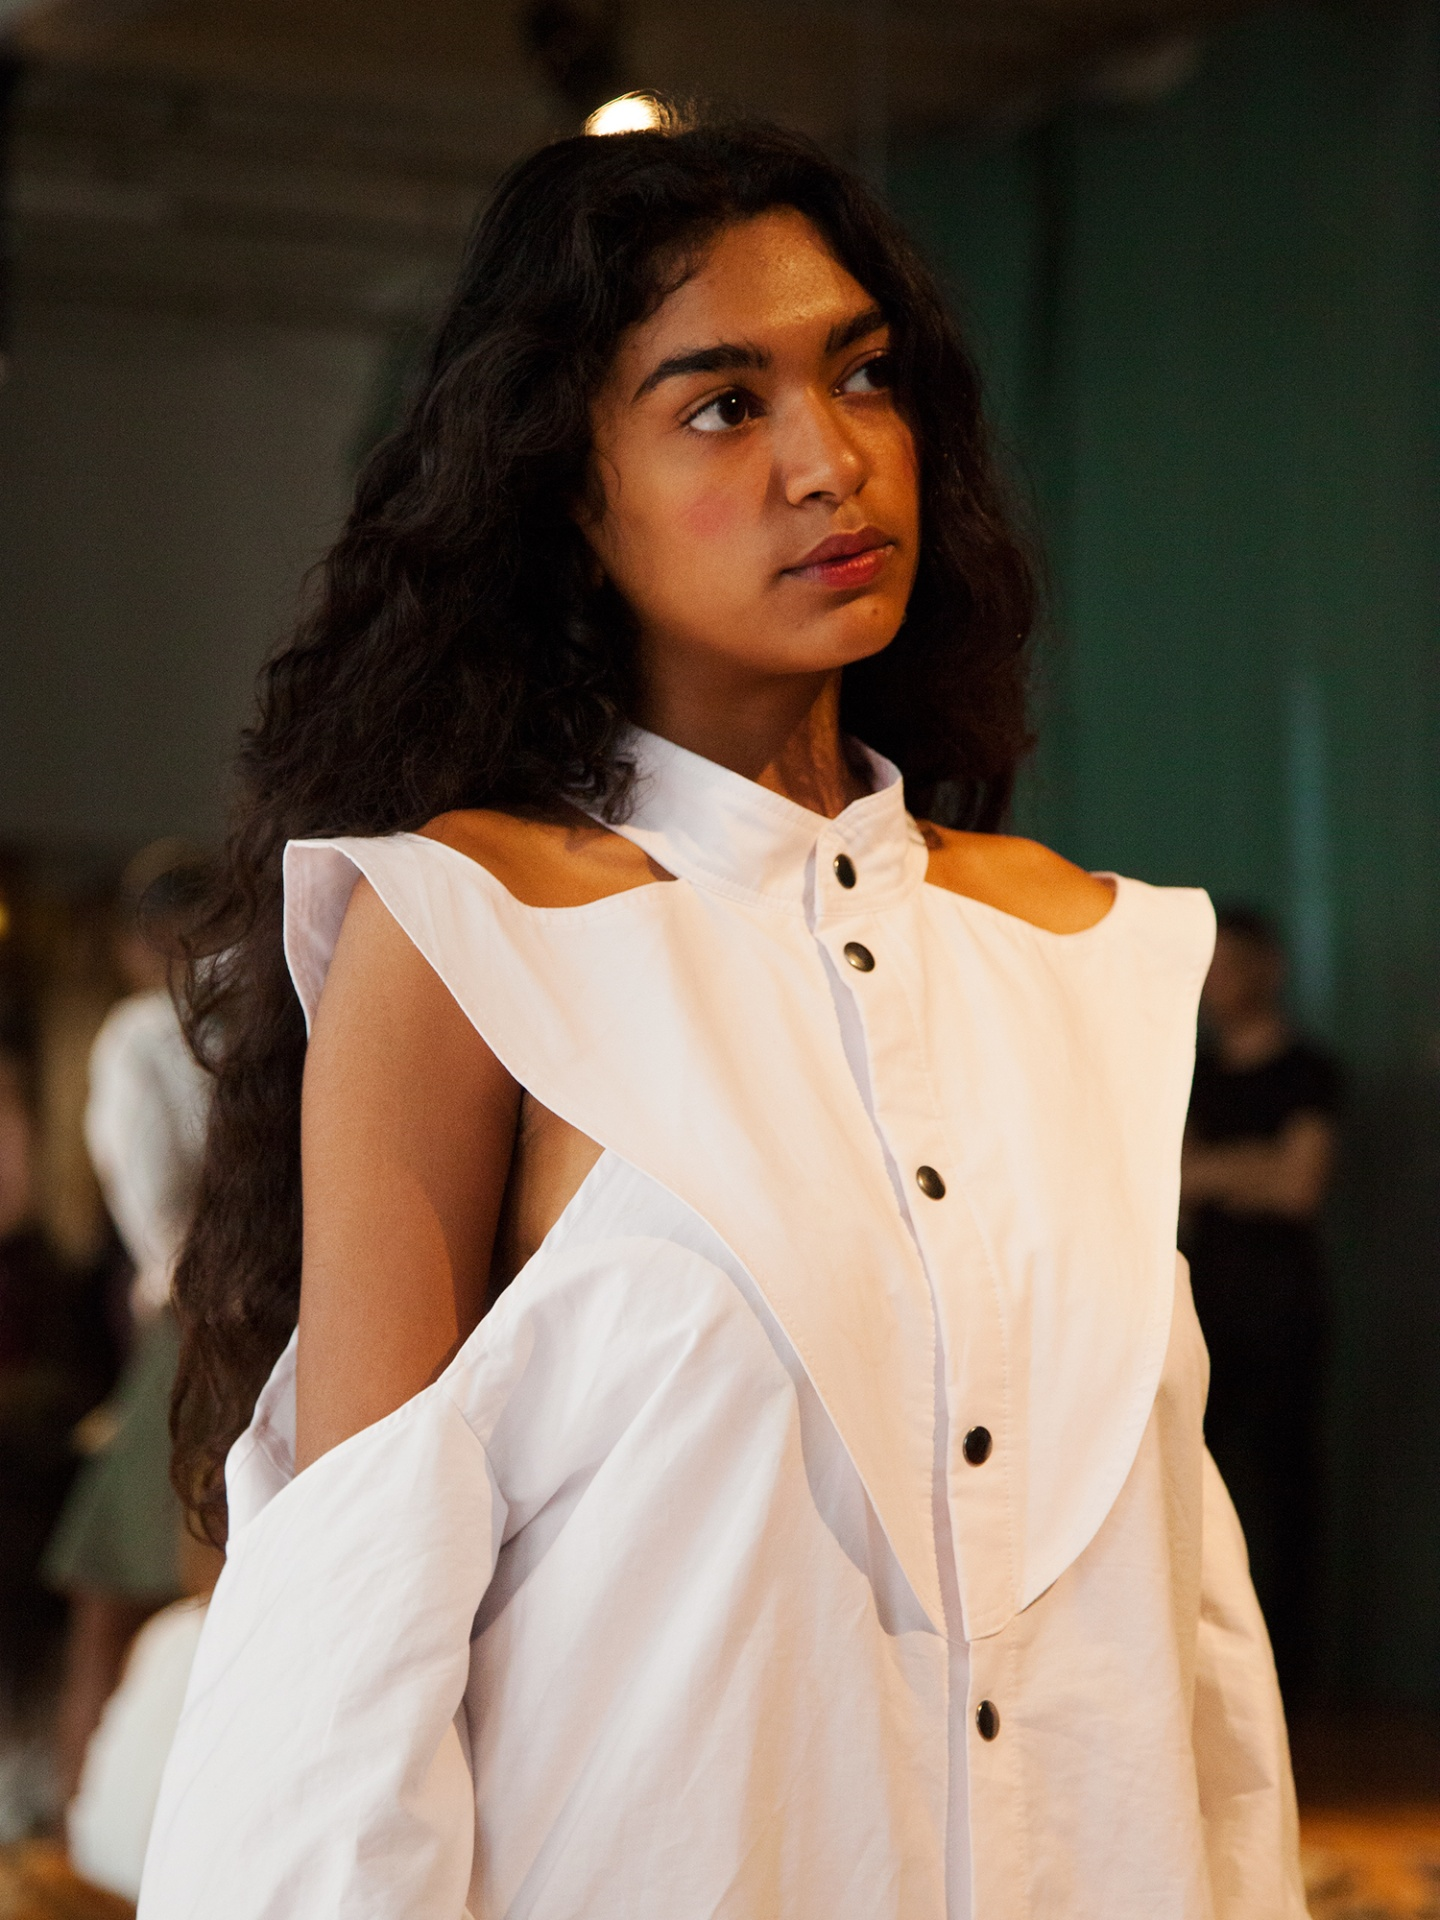 VEJAS' Spring Presentation Was Like Waking From A Strange Dream